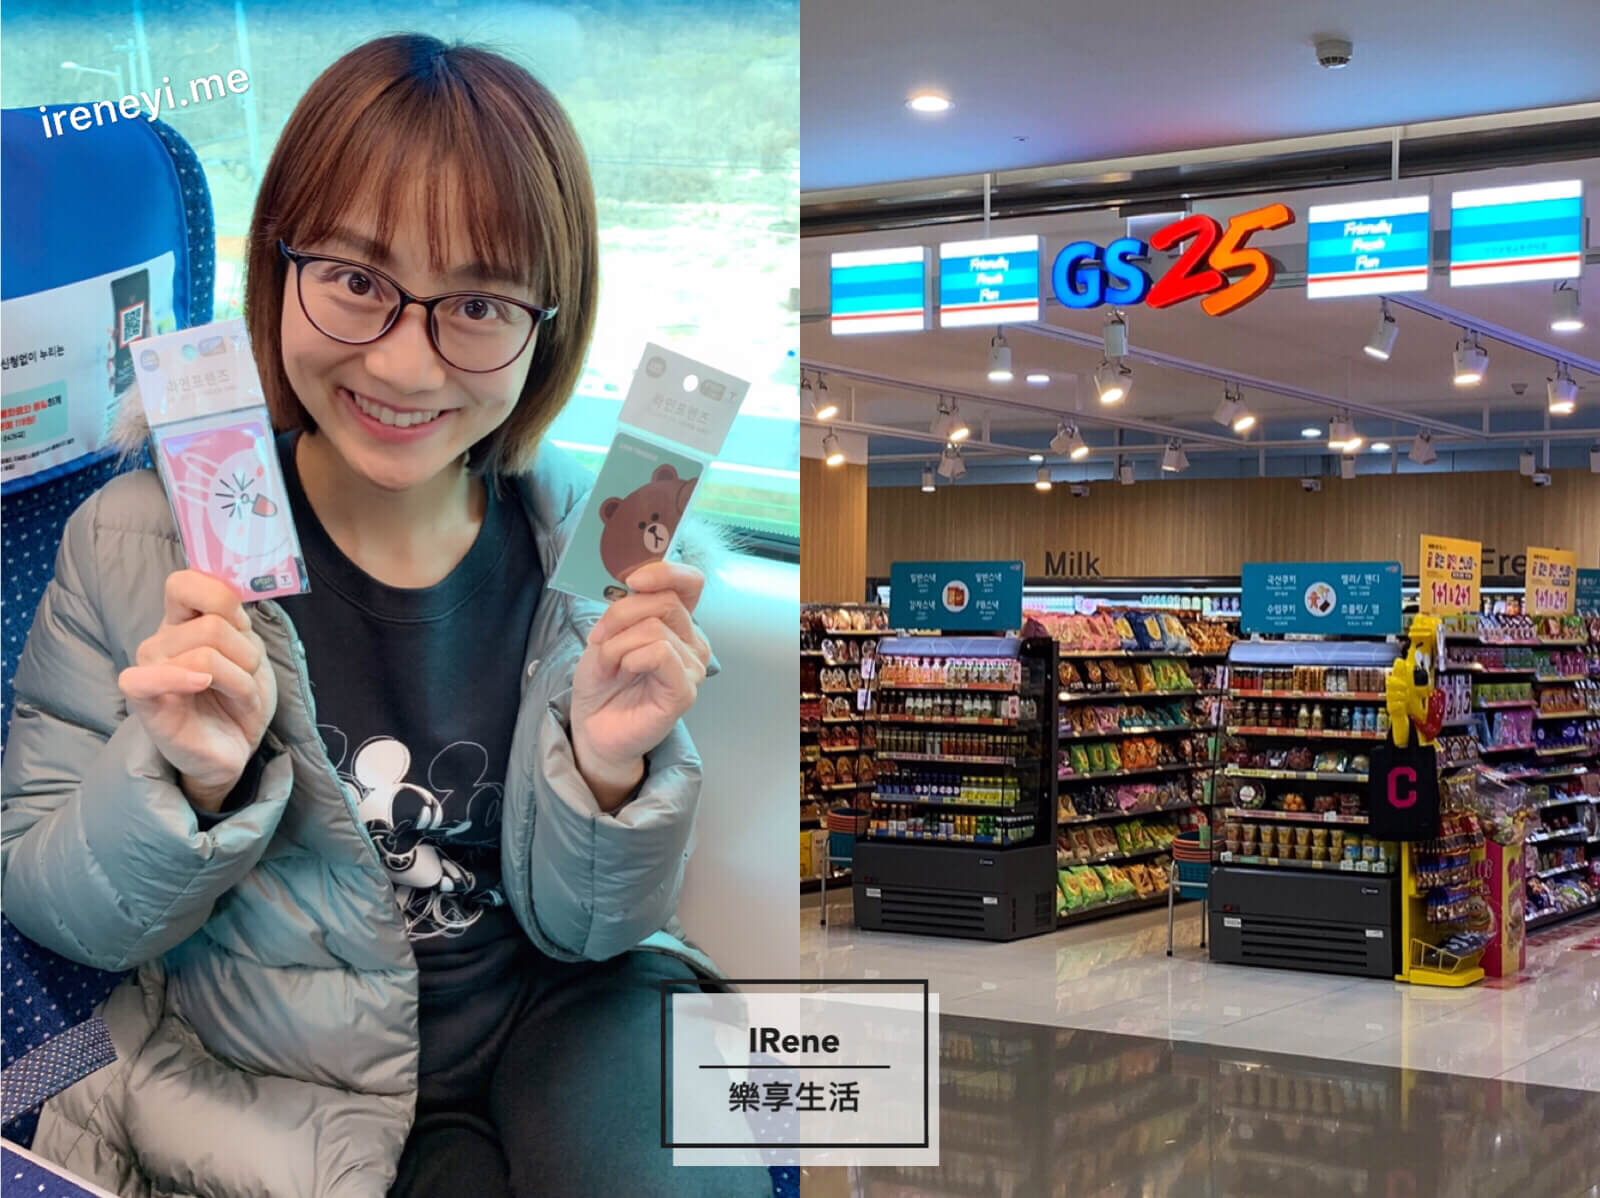 購買首爾T-Money交通卡, Purchase Seoul T-Money Transportation Card, 购买首尔T-Money交通卡